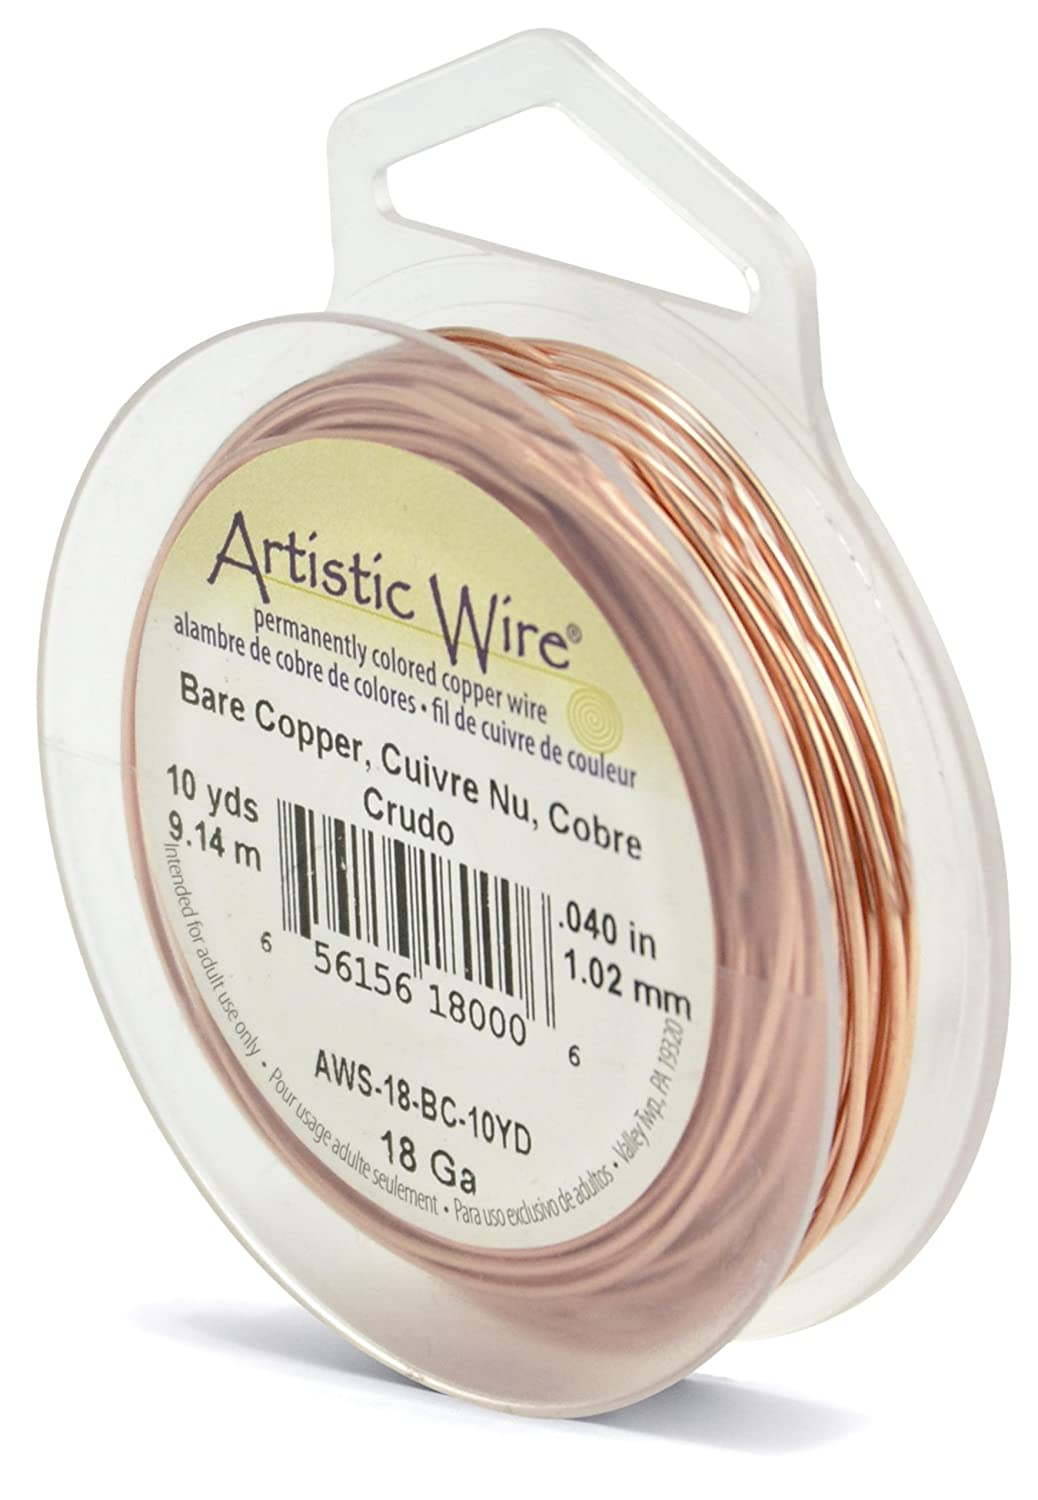 Beadalon 10-Yards Artistic 18-Gauge Bare Wire, Copper AWS-18-BC-10YD